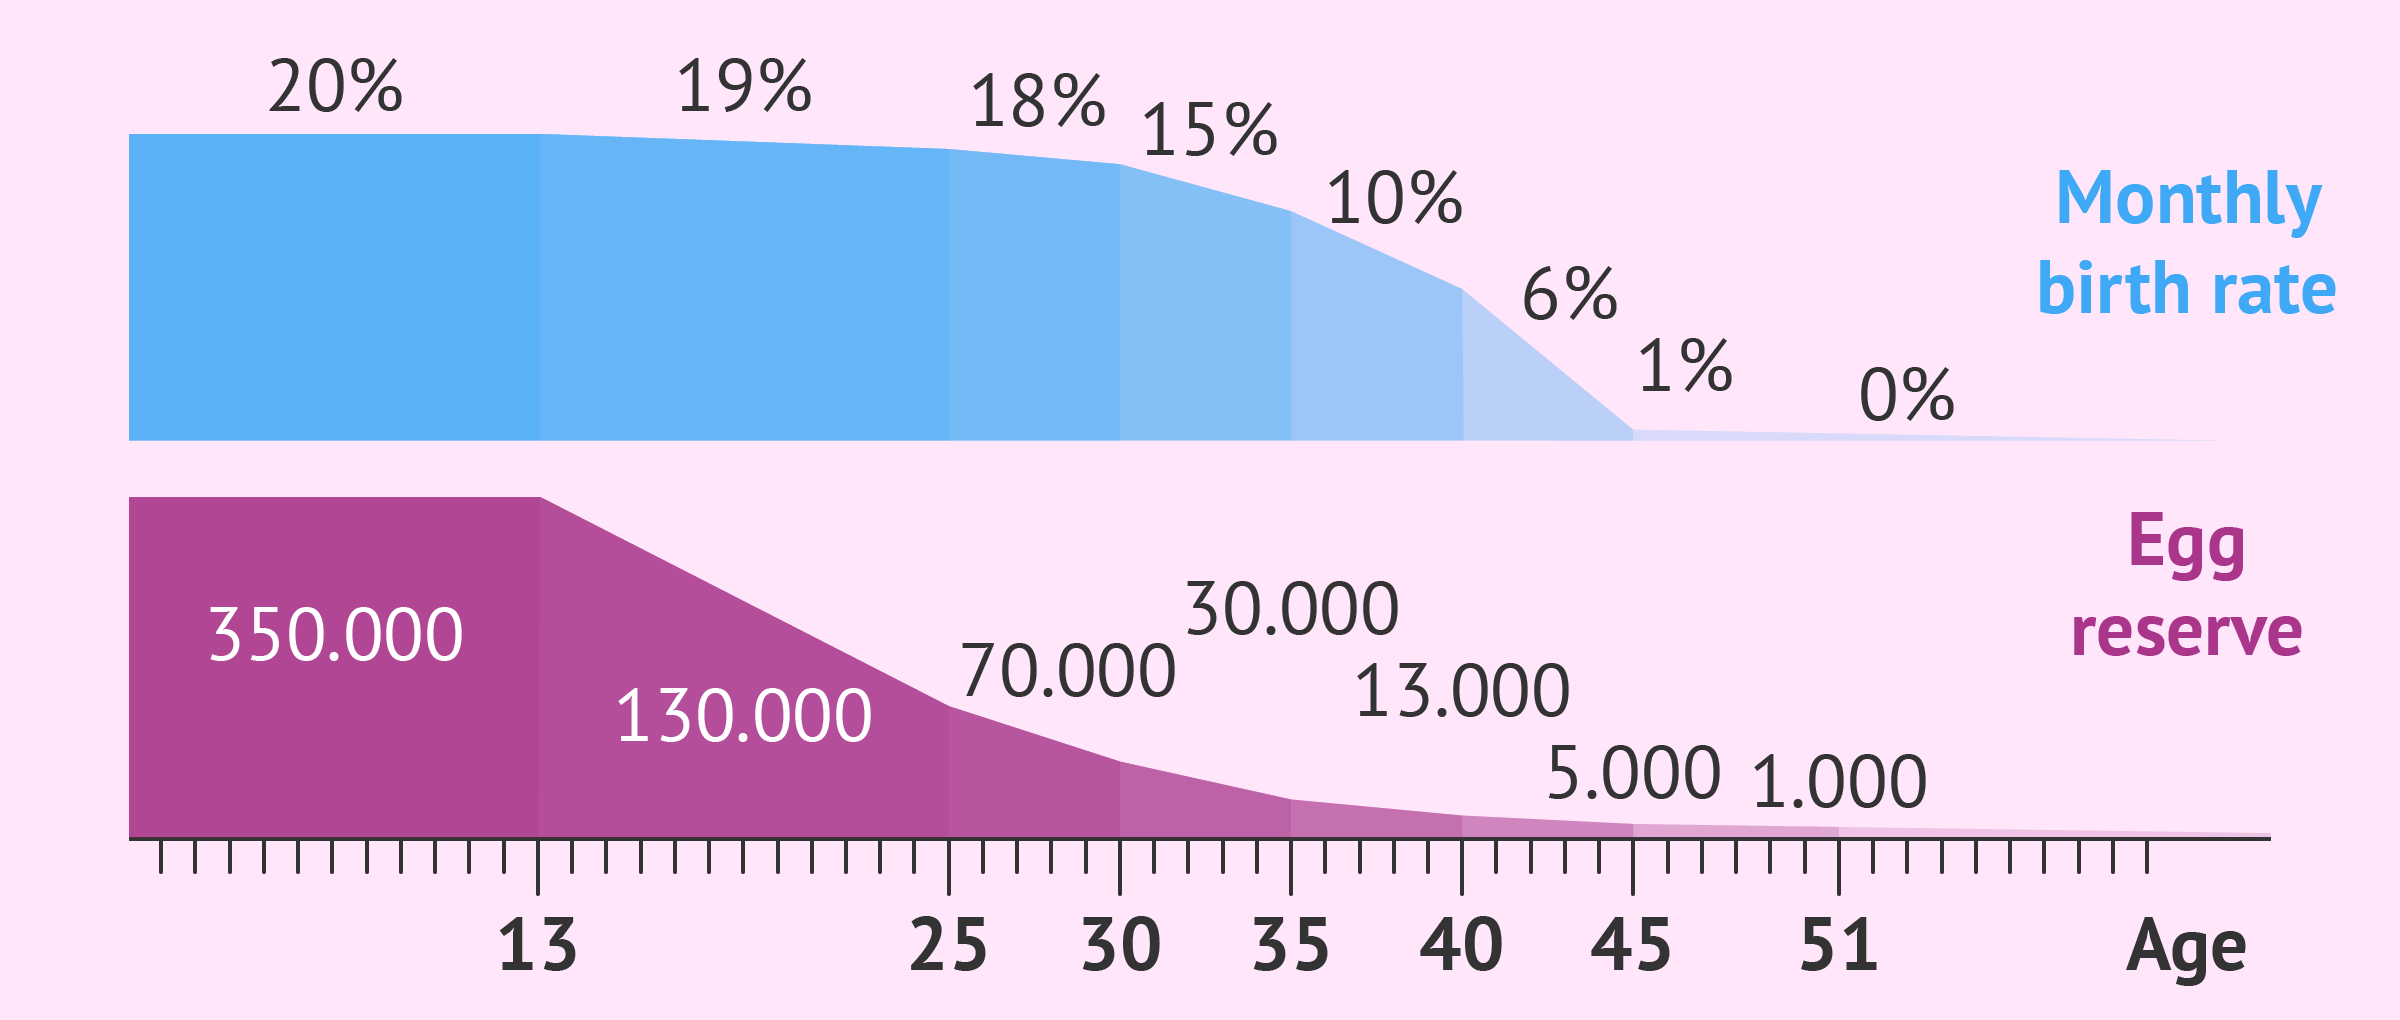 How Many Eggs Does a Woman Have? - Your Egg Count by Age